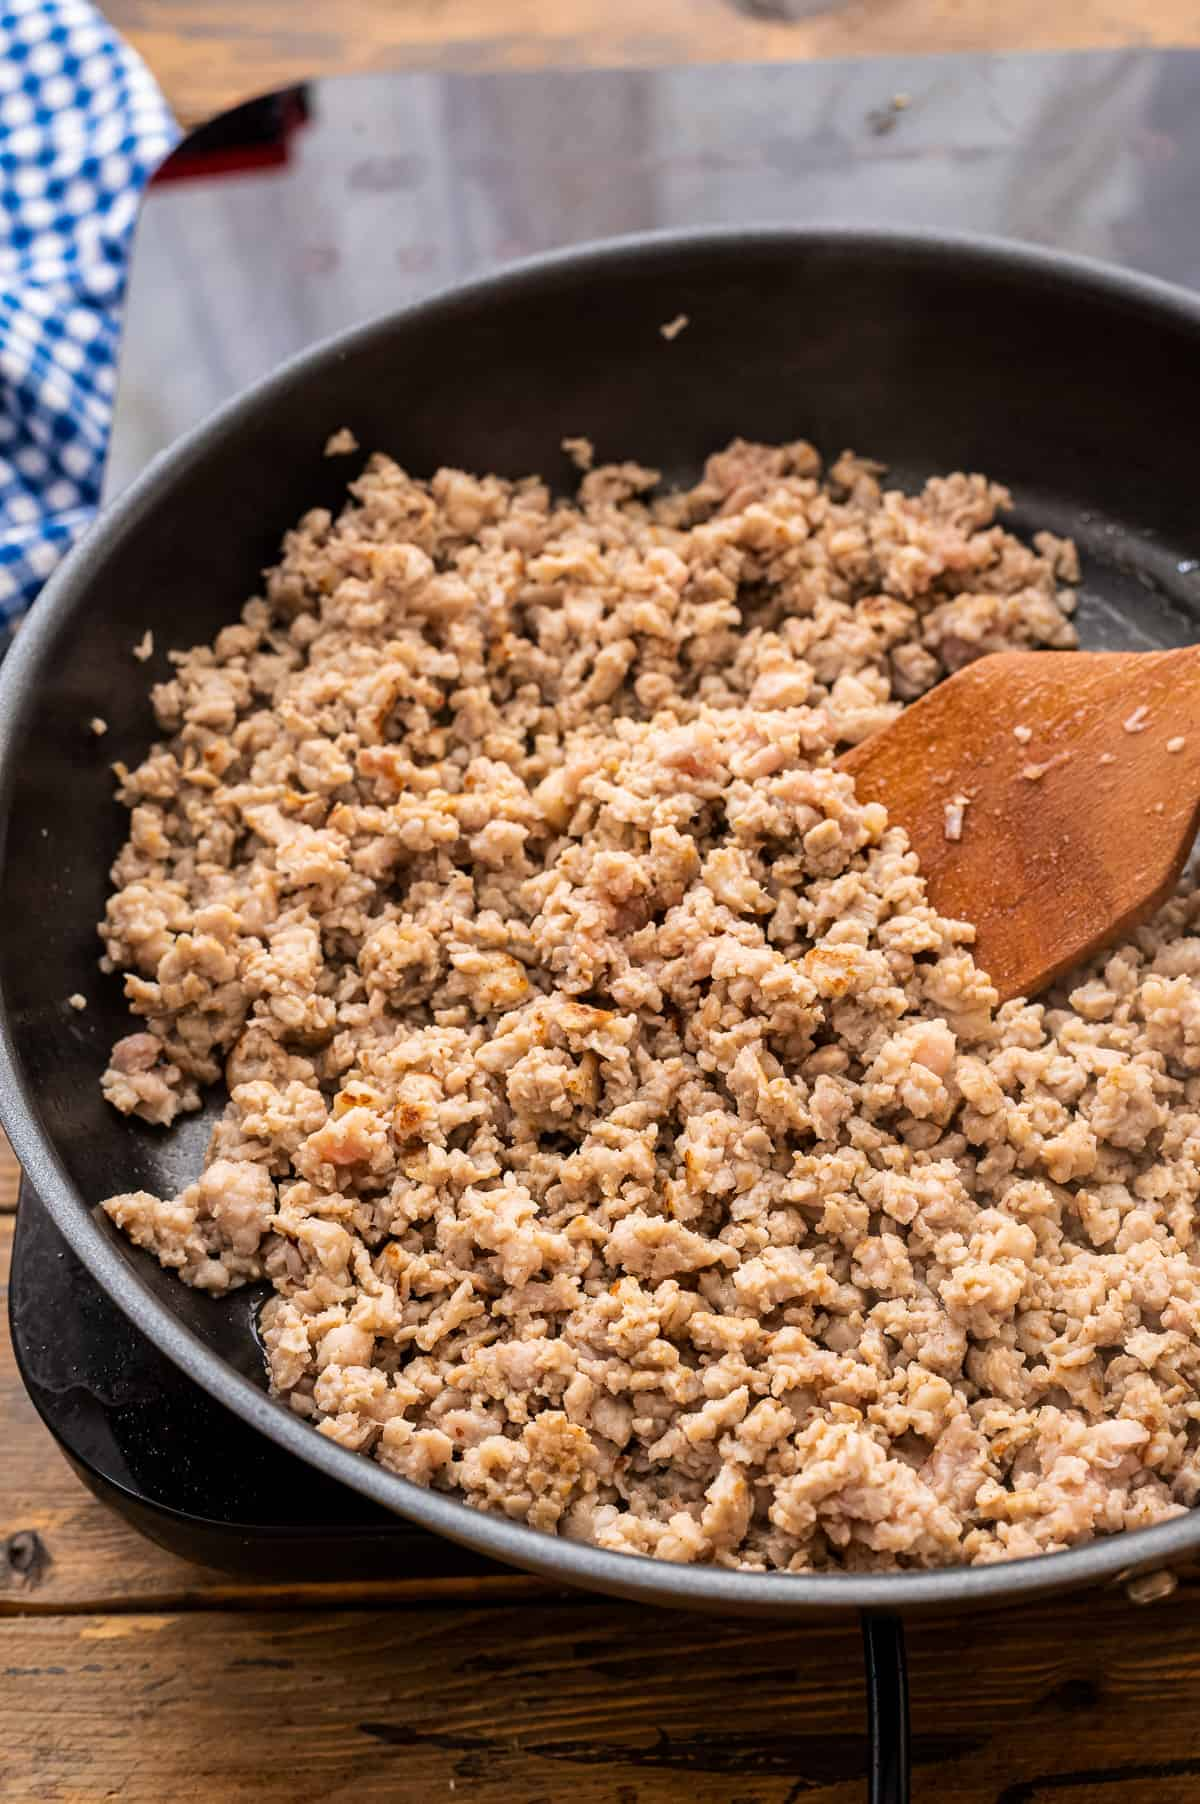 Cast Iron skillet with ground sausage being browned in it